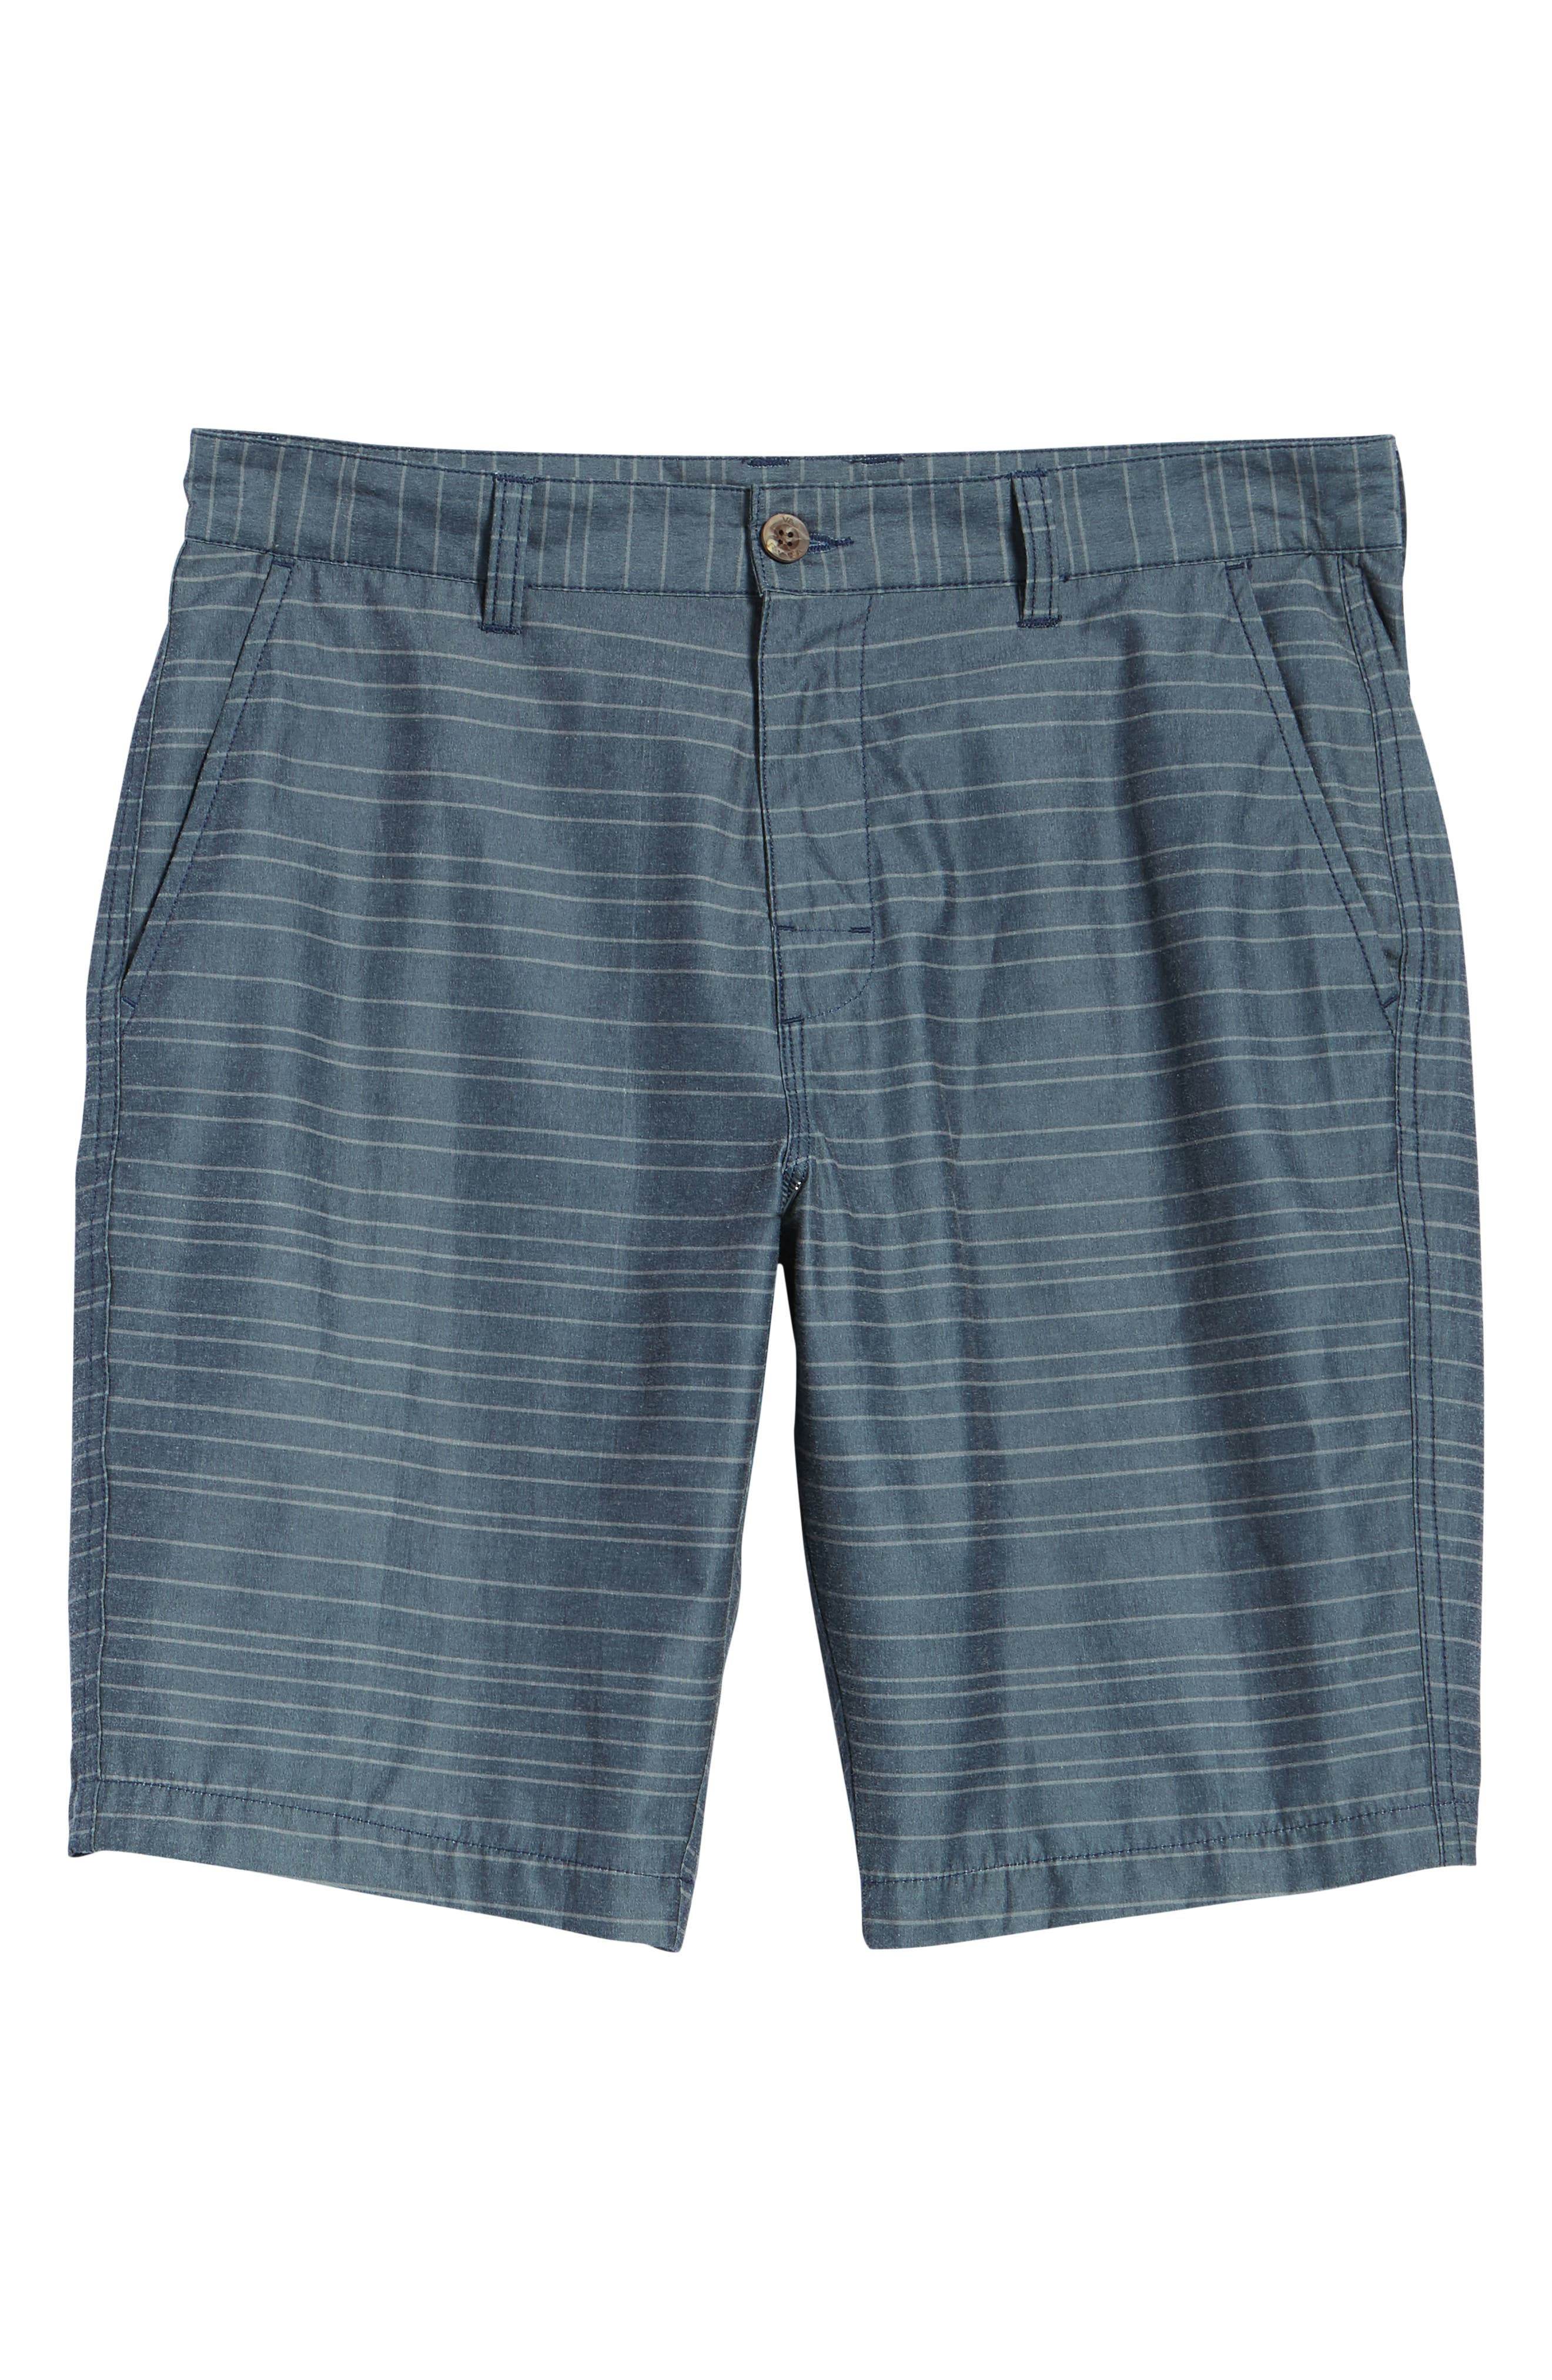 Weekend Hybrid II Shorts,                             Alternate thumbnail 5, color,                             Classic Indigo